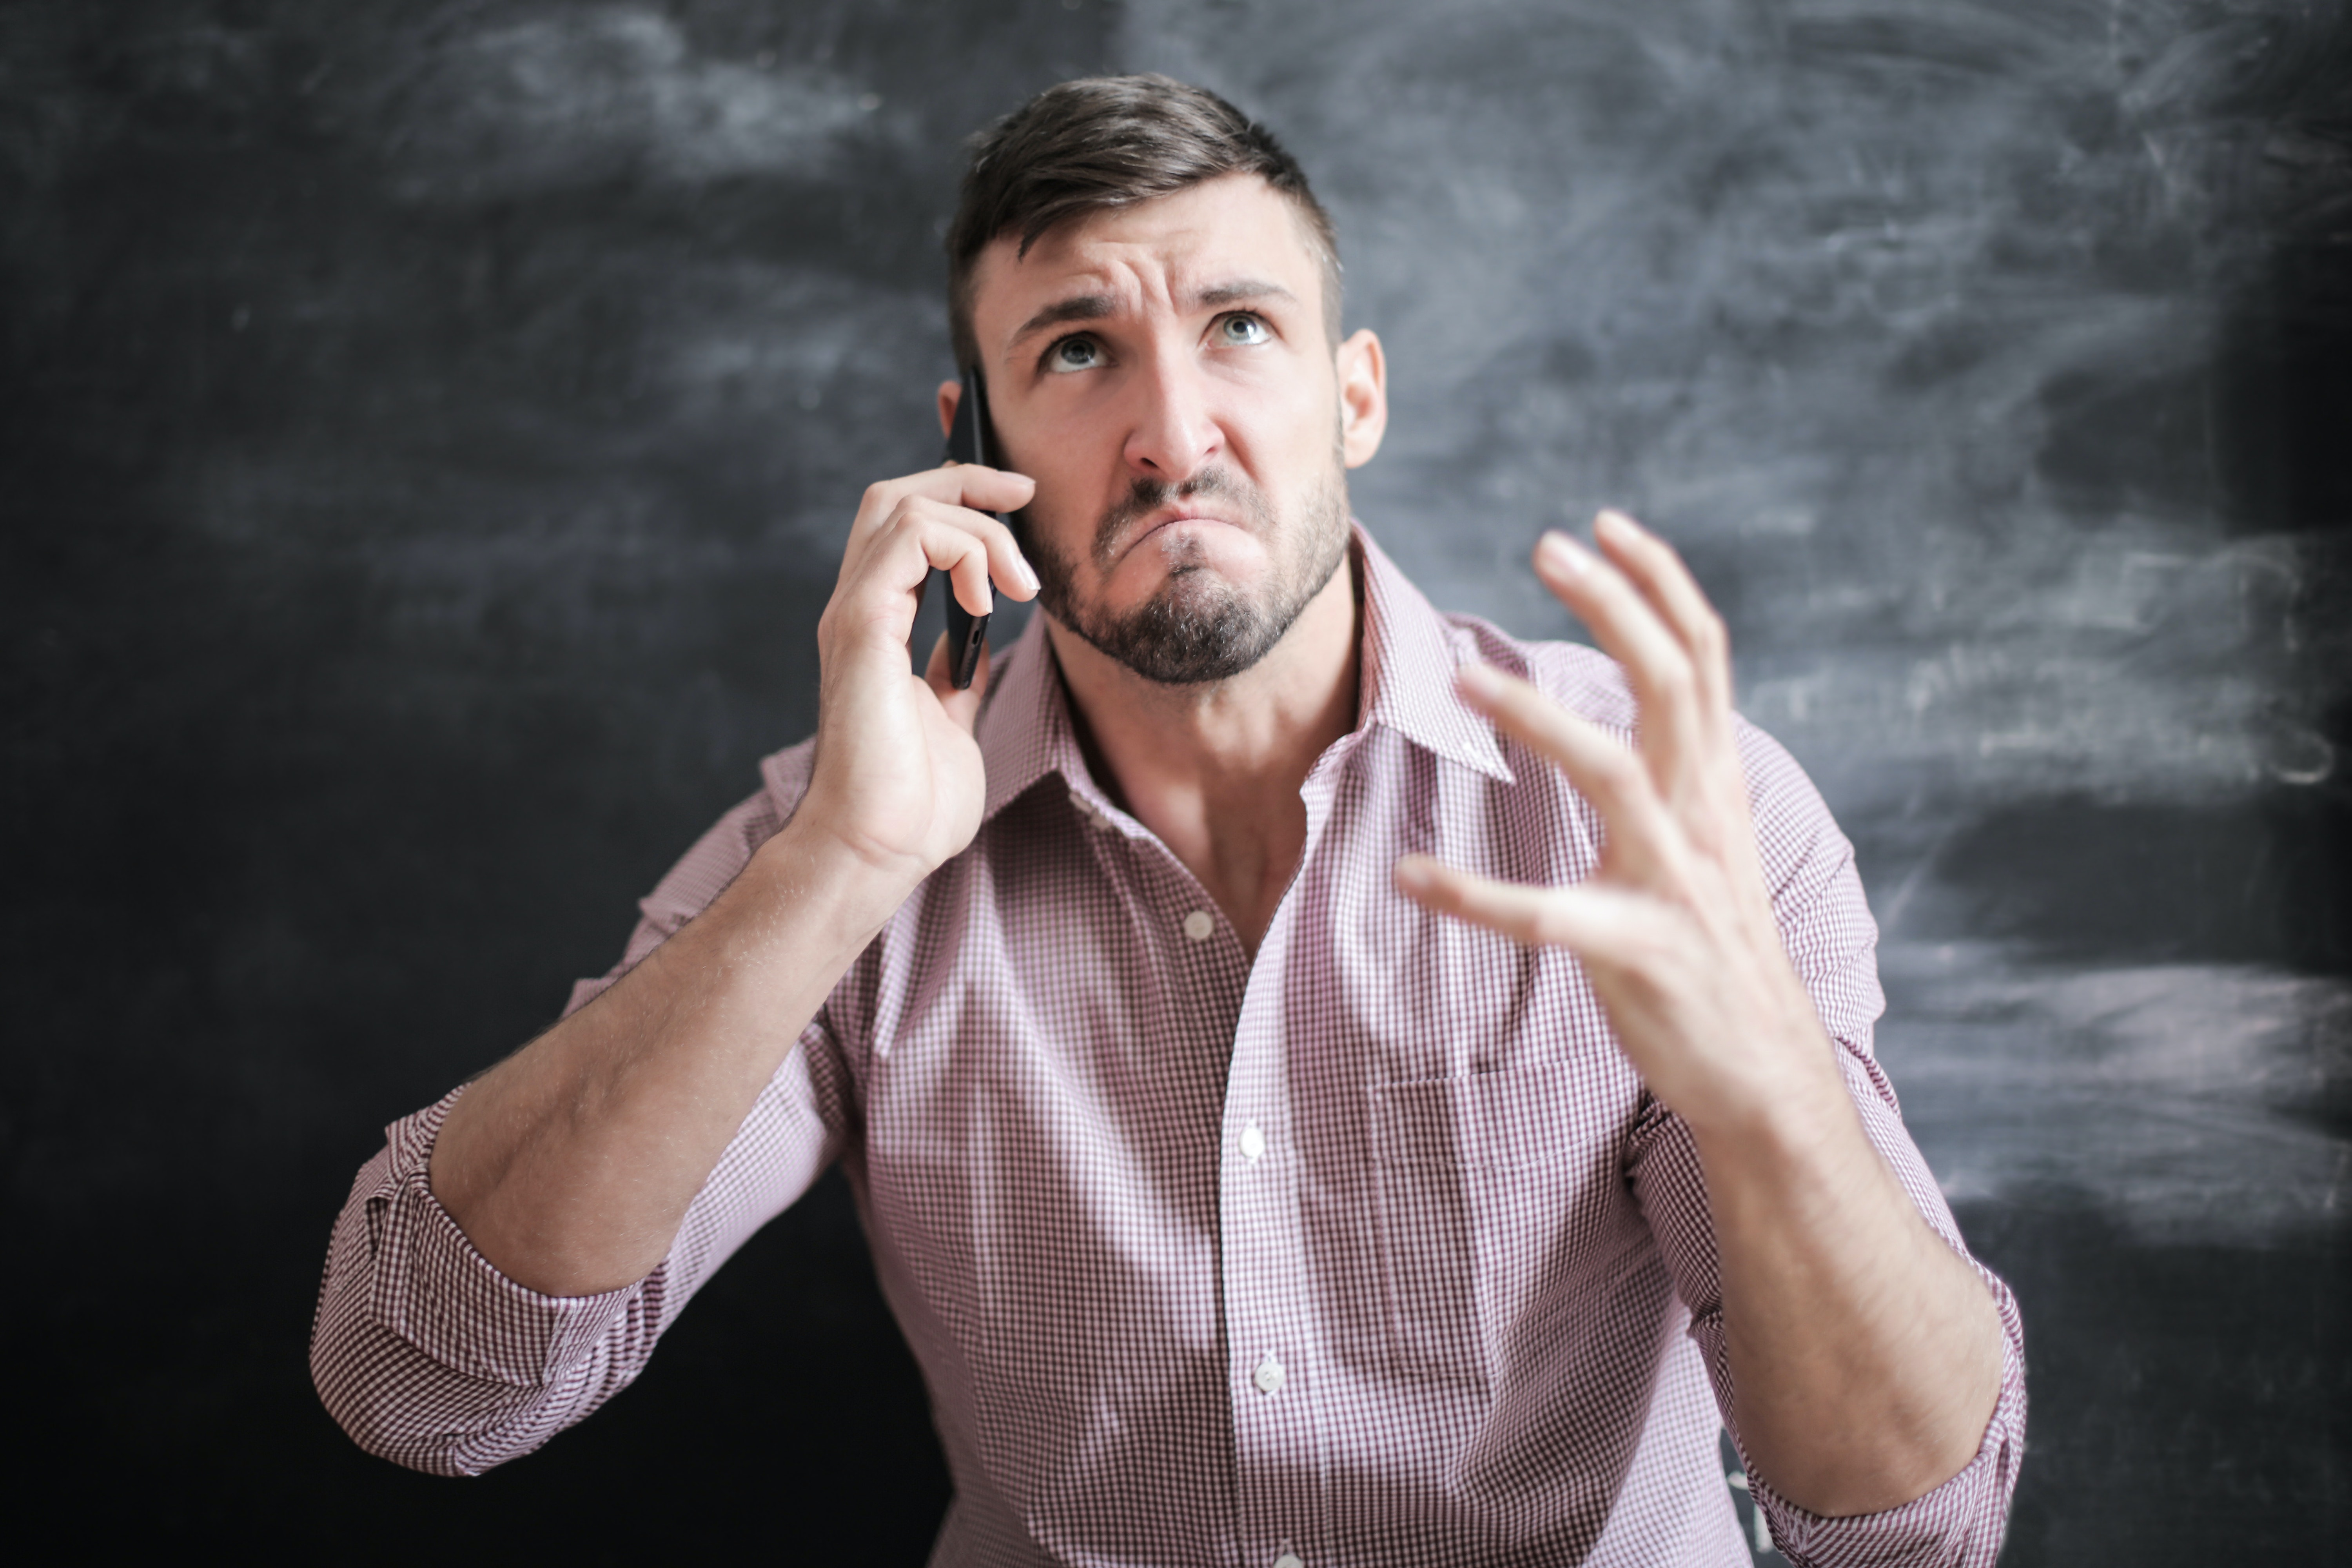 Angry man using a mobile phone. | Photo: Pexels